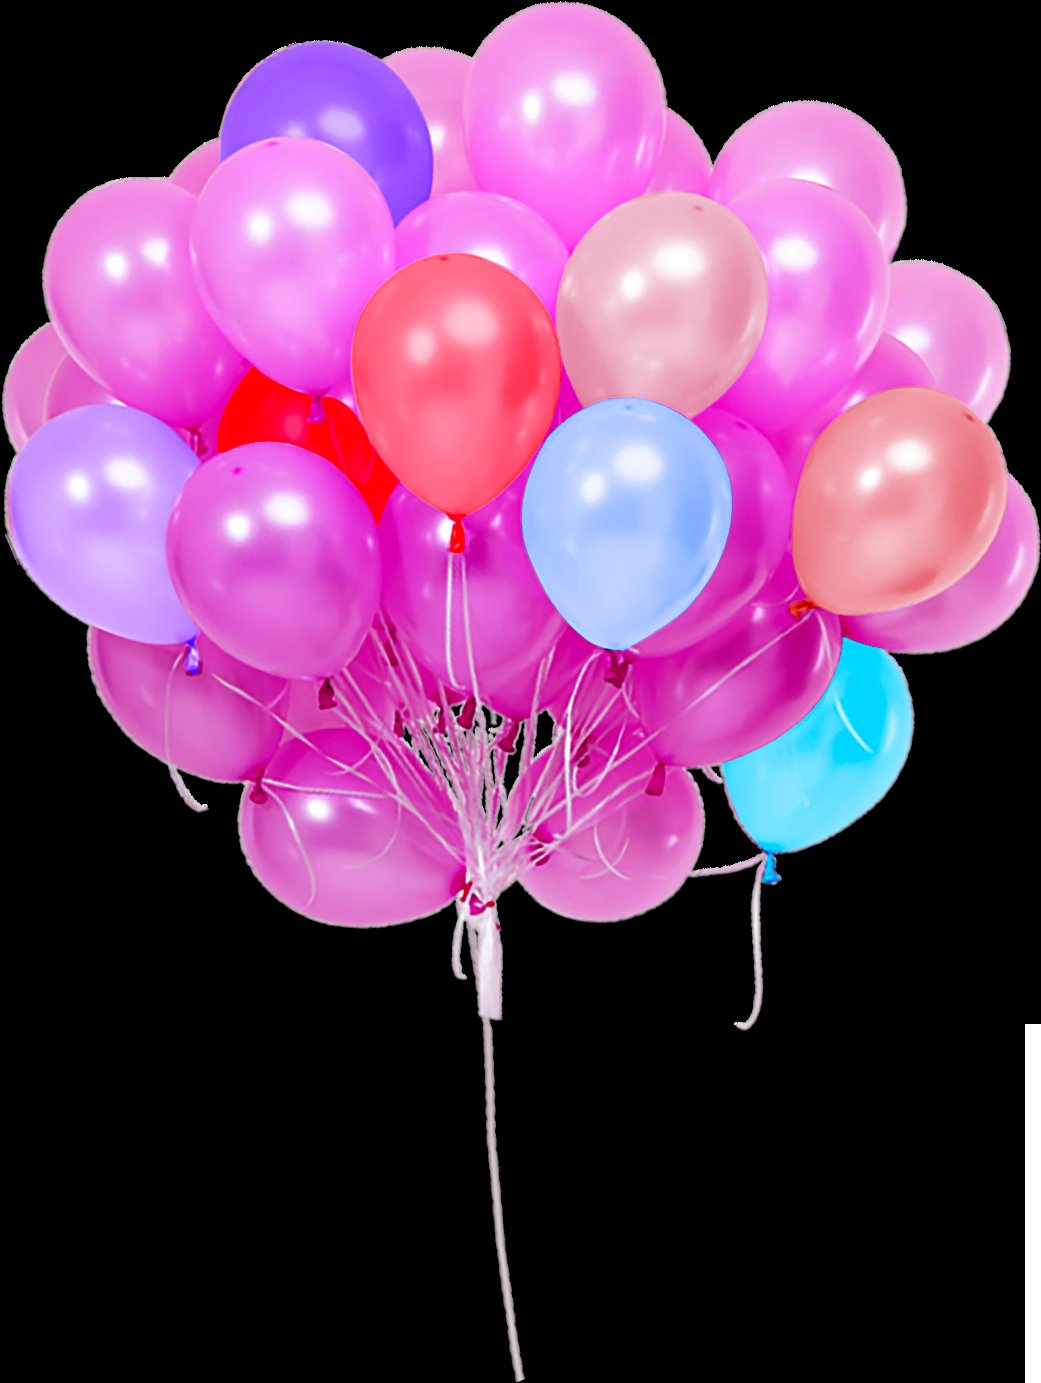 200 Balloons Png Photoshop Overlays  Backgrounds